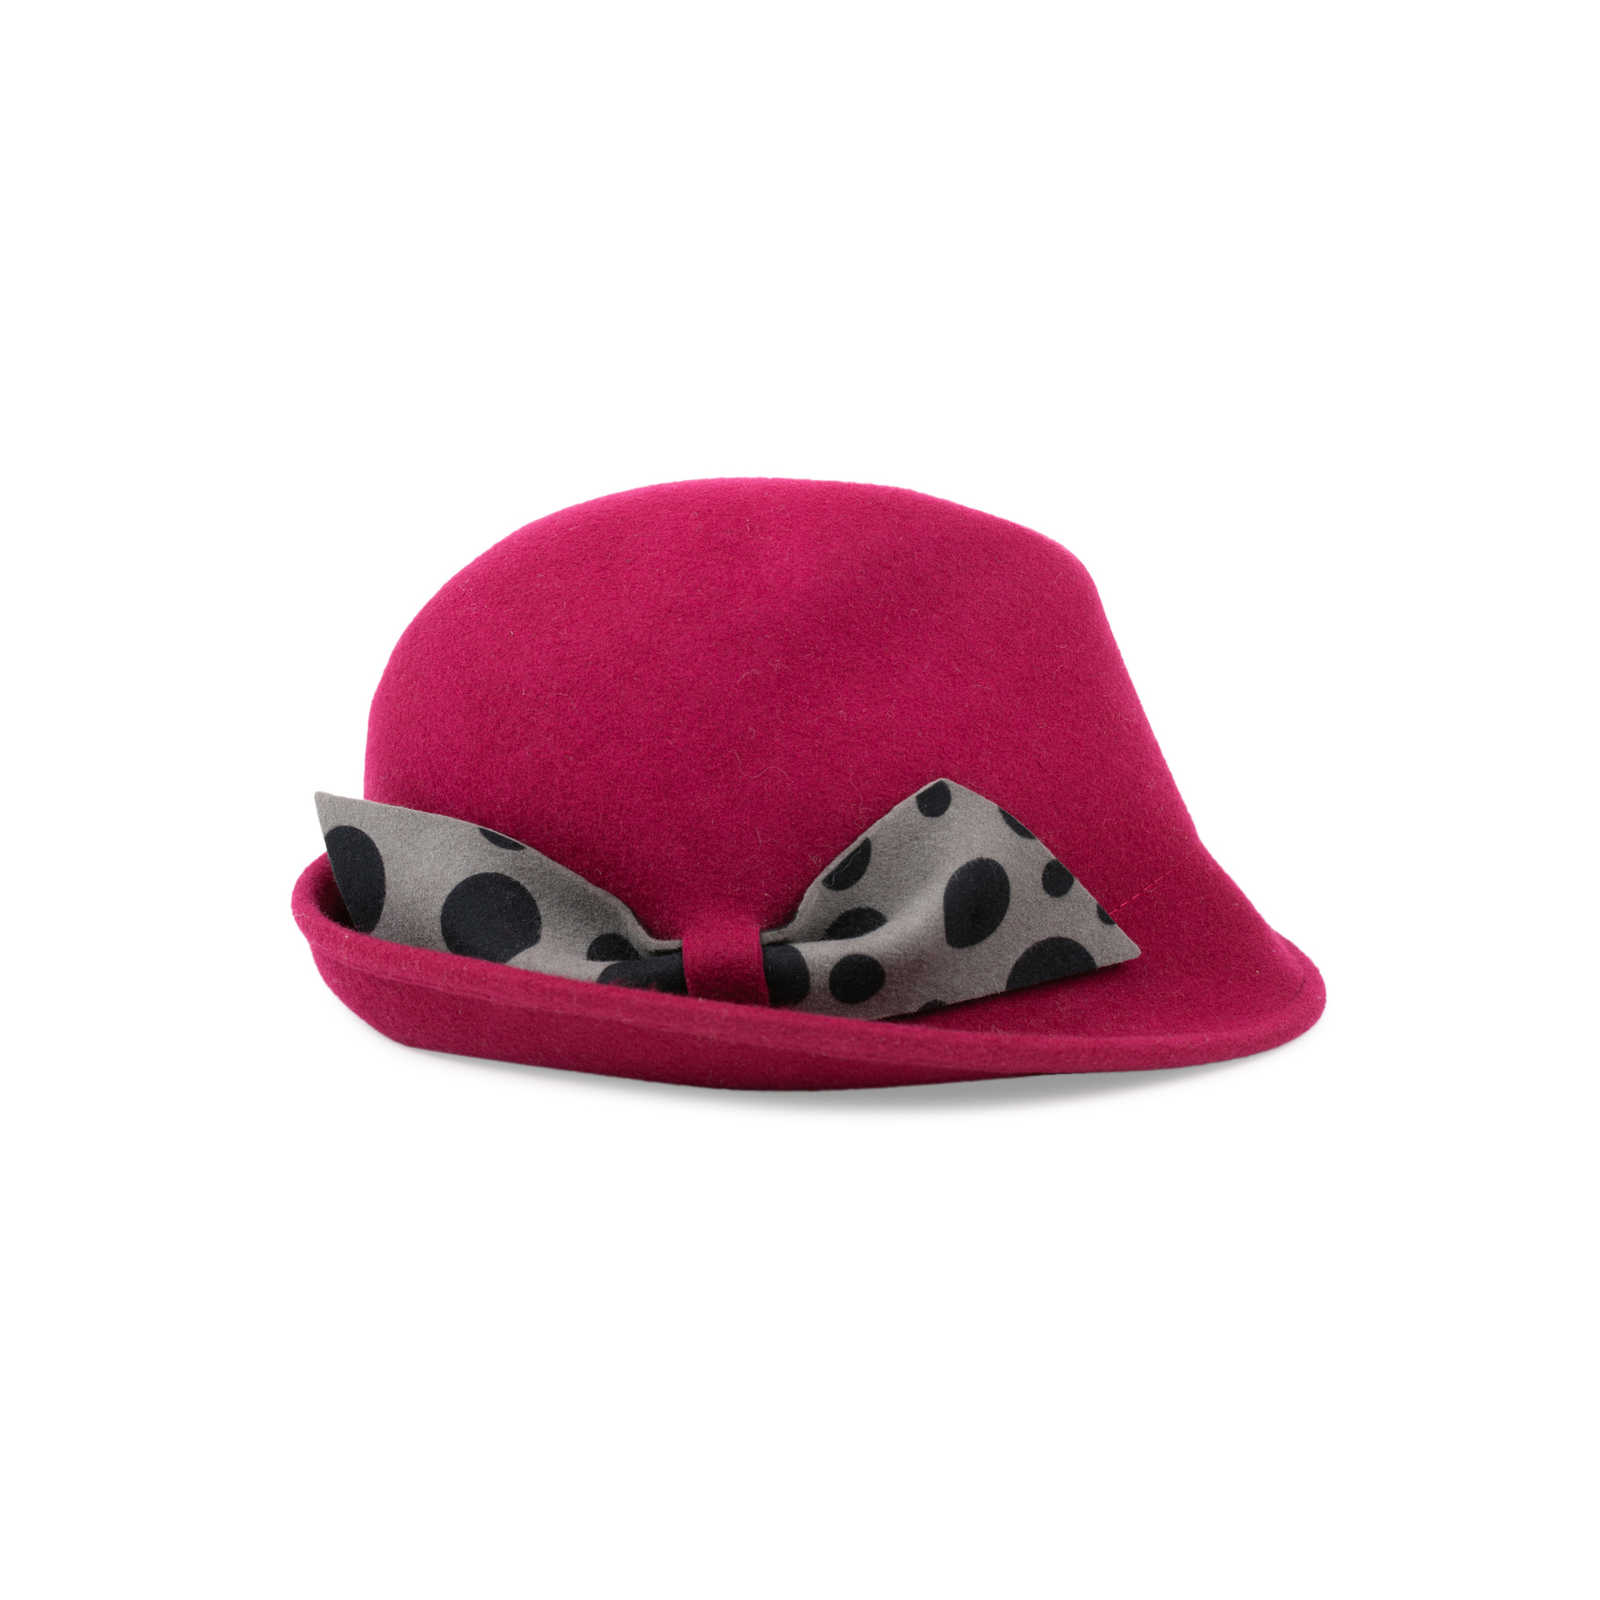 6326e04ef28 ... Authentic Pre Owned Emporio Armani Wool Hat (PSS-515-00088) - Thumbnail  ...